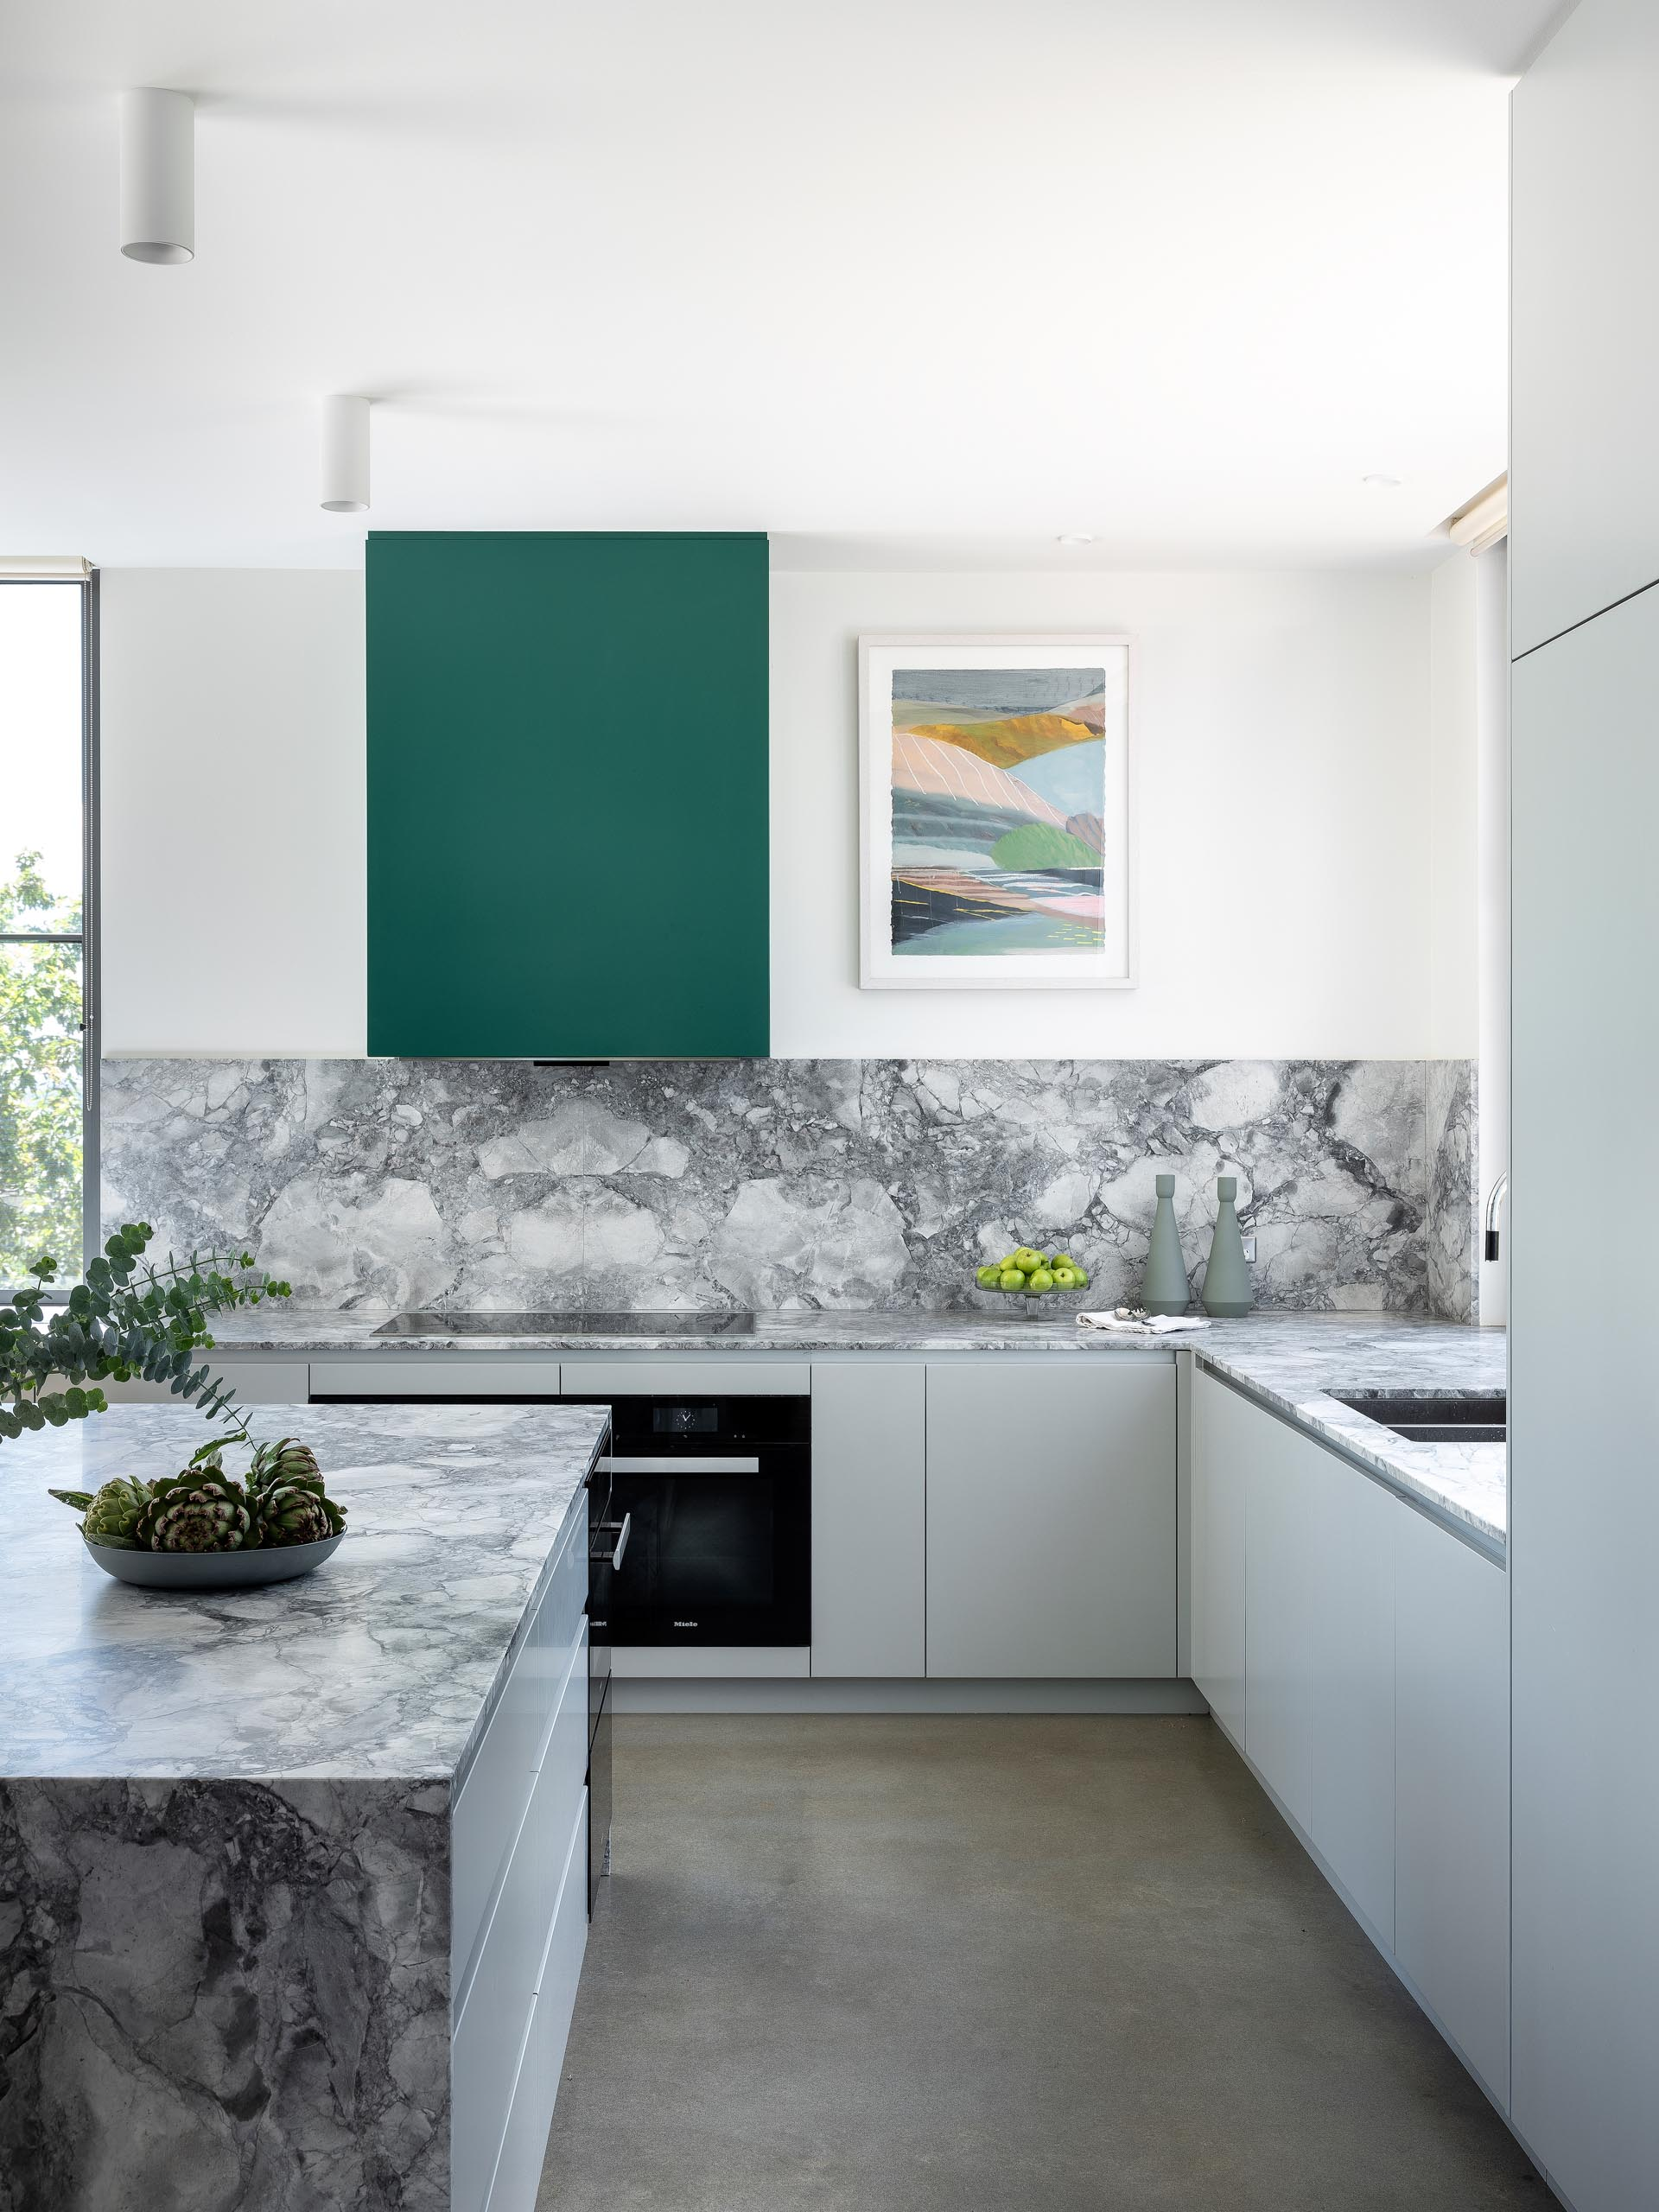 This kitchen has minimalist light gray cabinets that complement the marble countertops and concrete floors, while green accents add a pop of color.